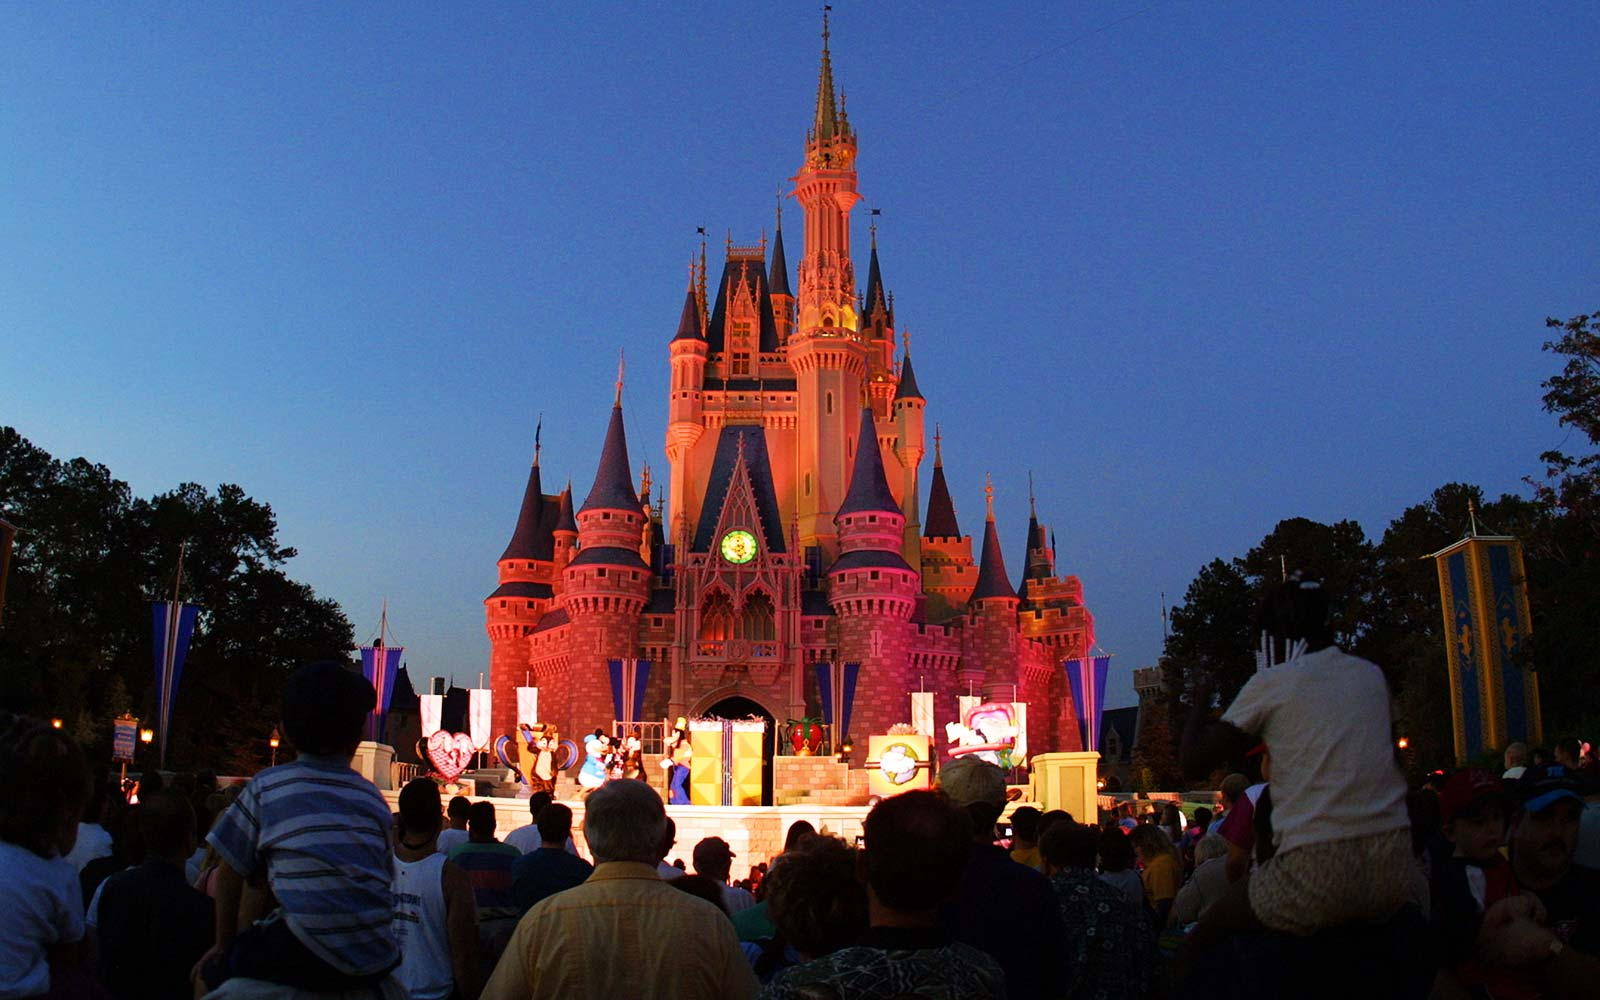 Secrets of Disney's Cinderella Castle